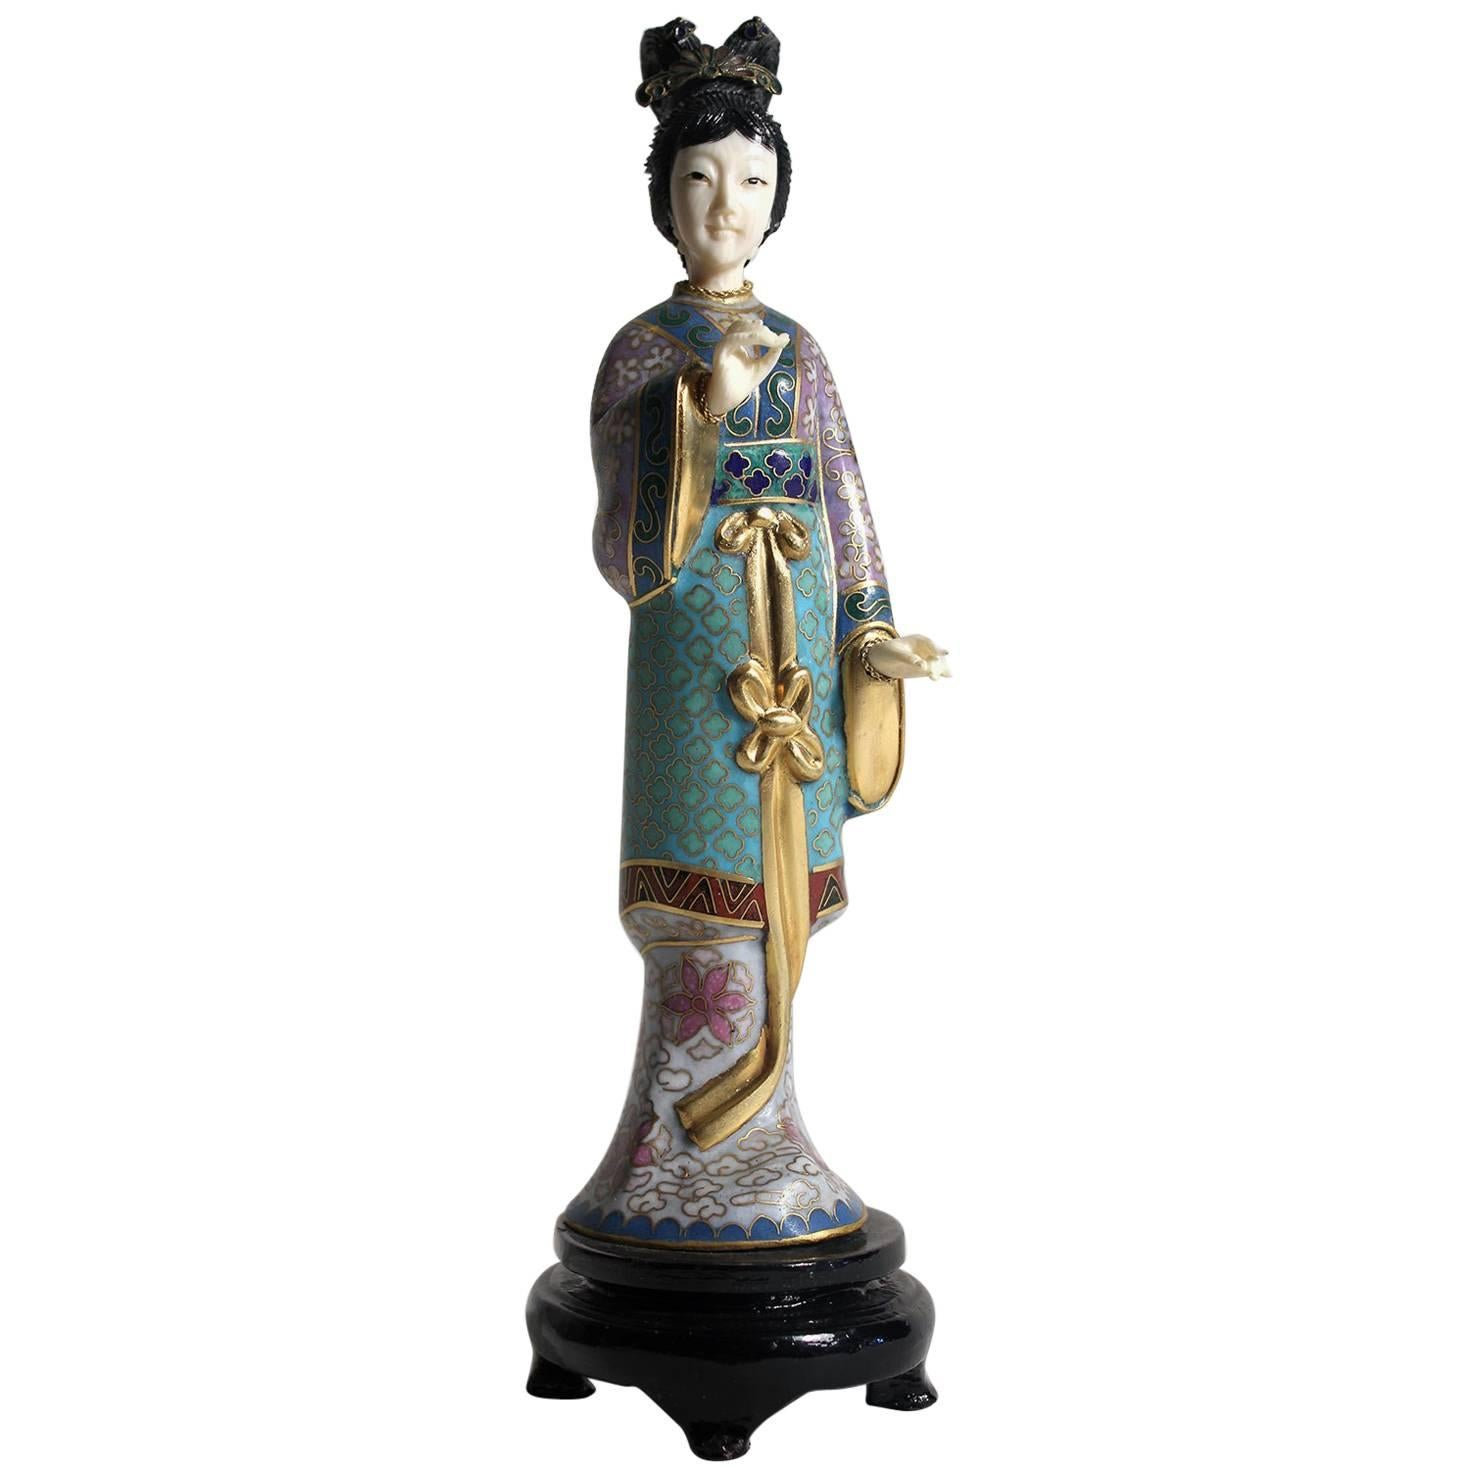 Antique Chinese Cloisonne Enameled Carved Guanyin Quan Yin Sculpture Figurine